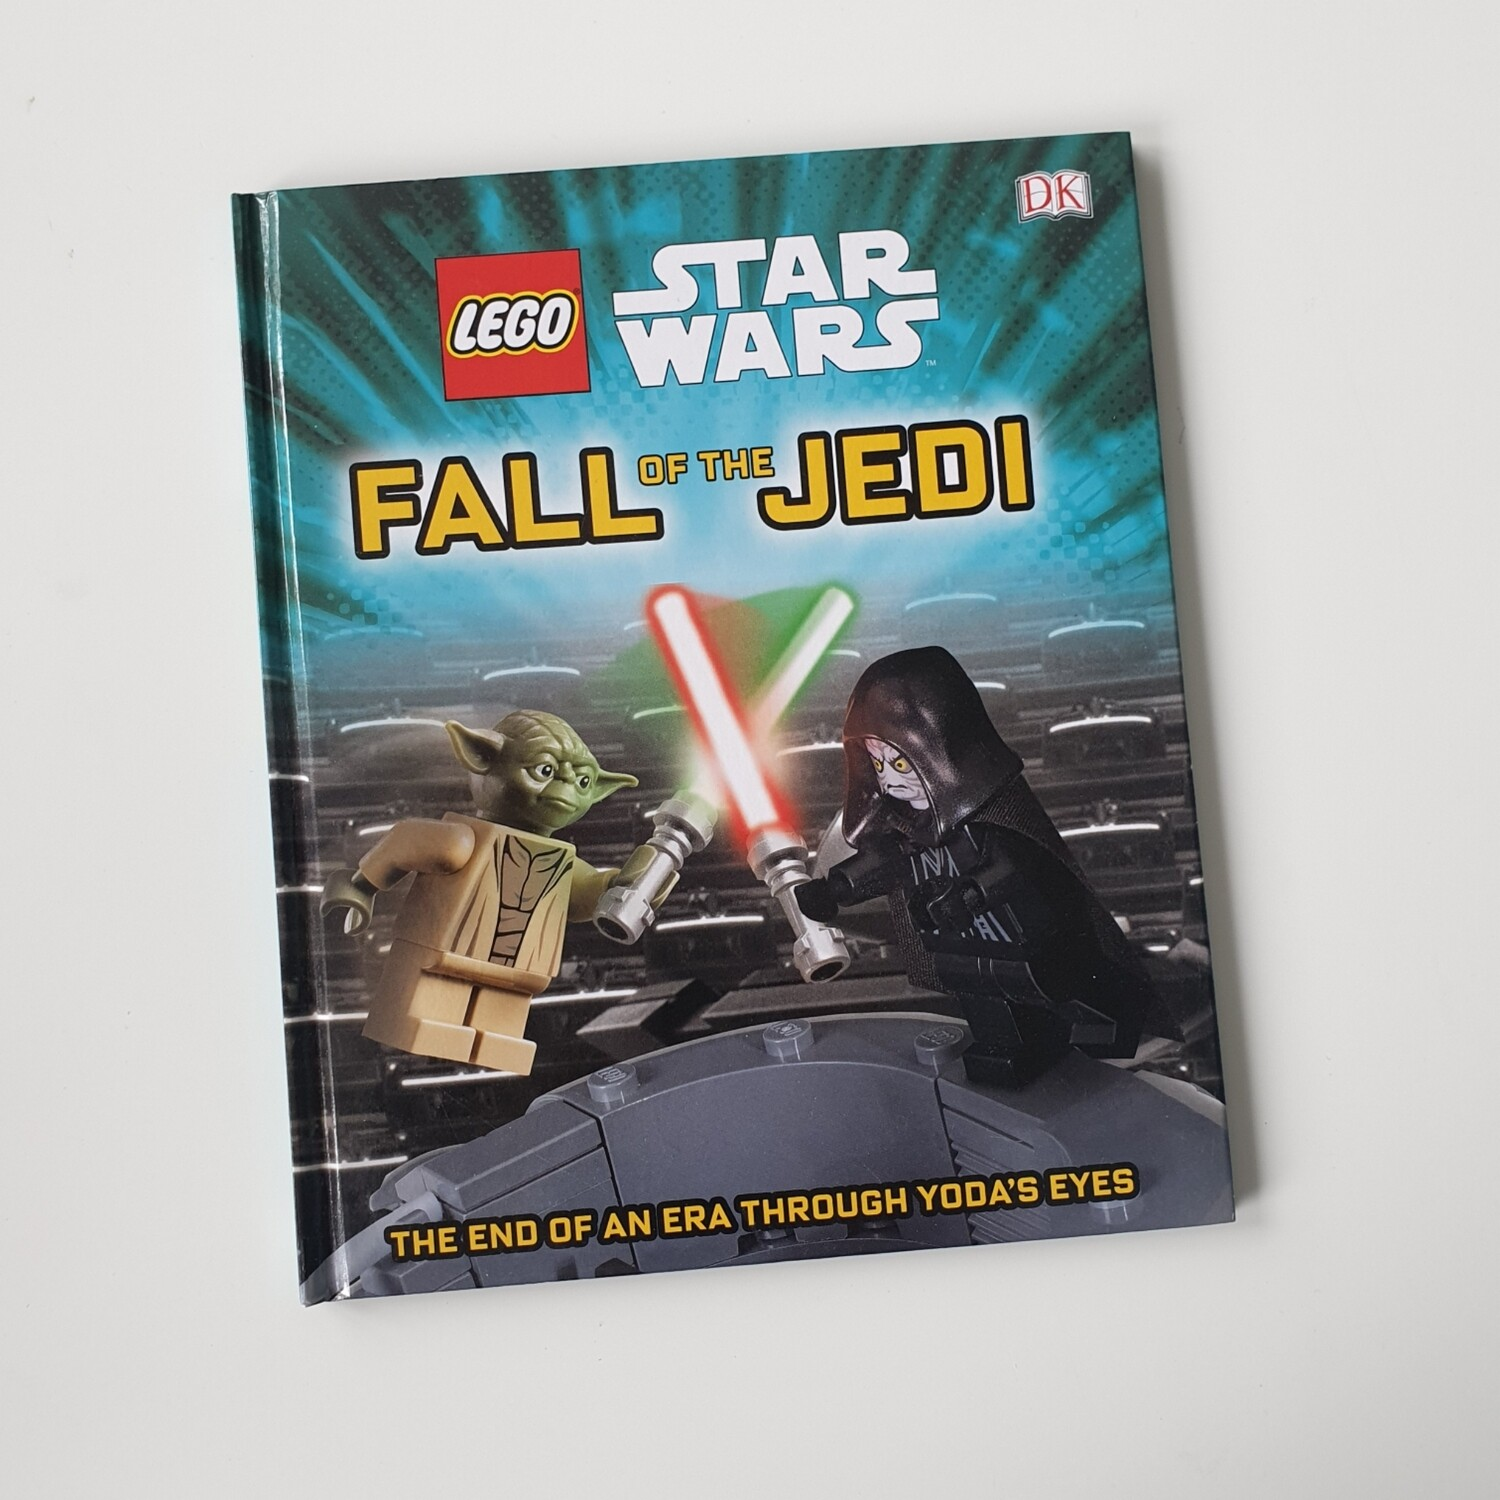 Star Wars LEGO Notebooks - choose from a selection